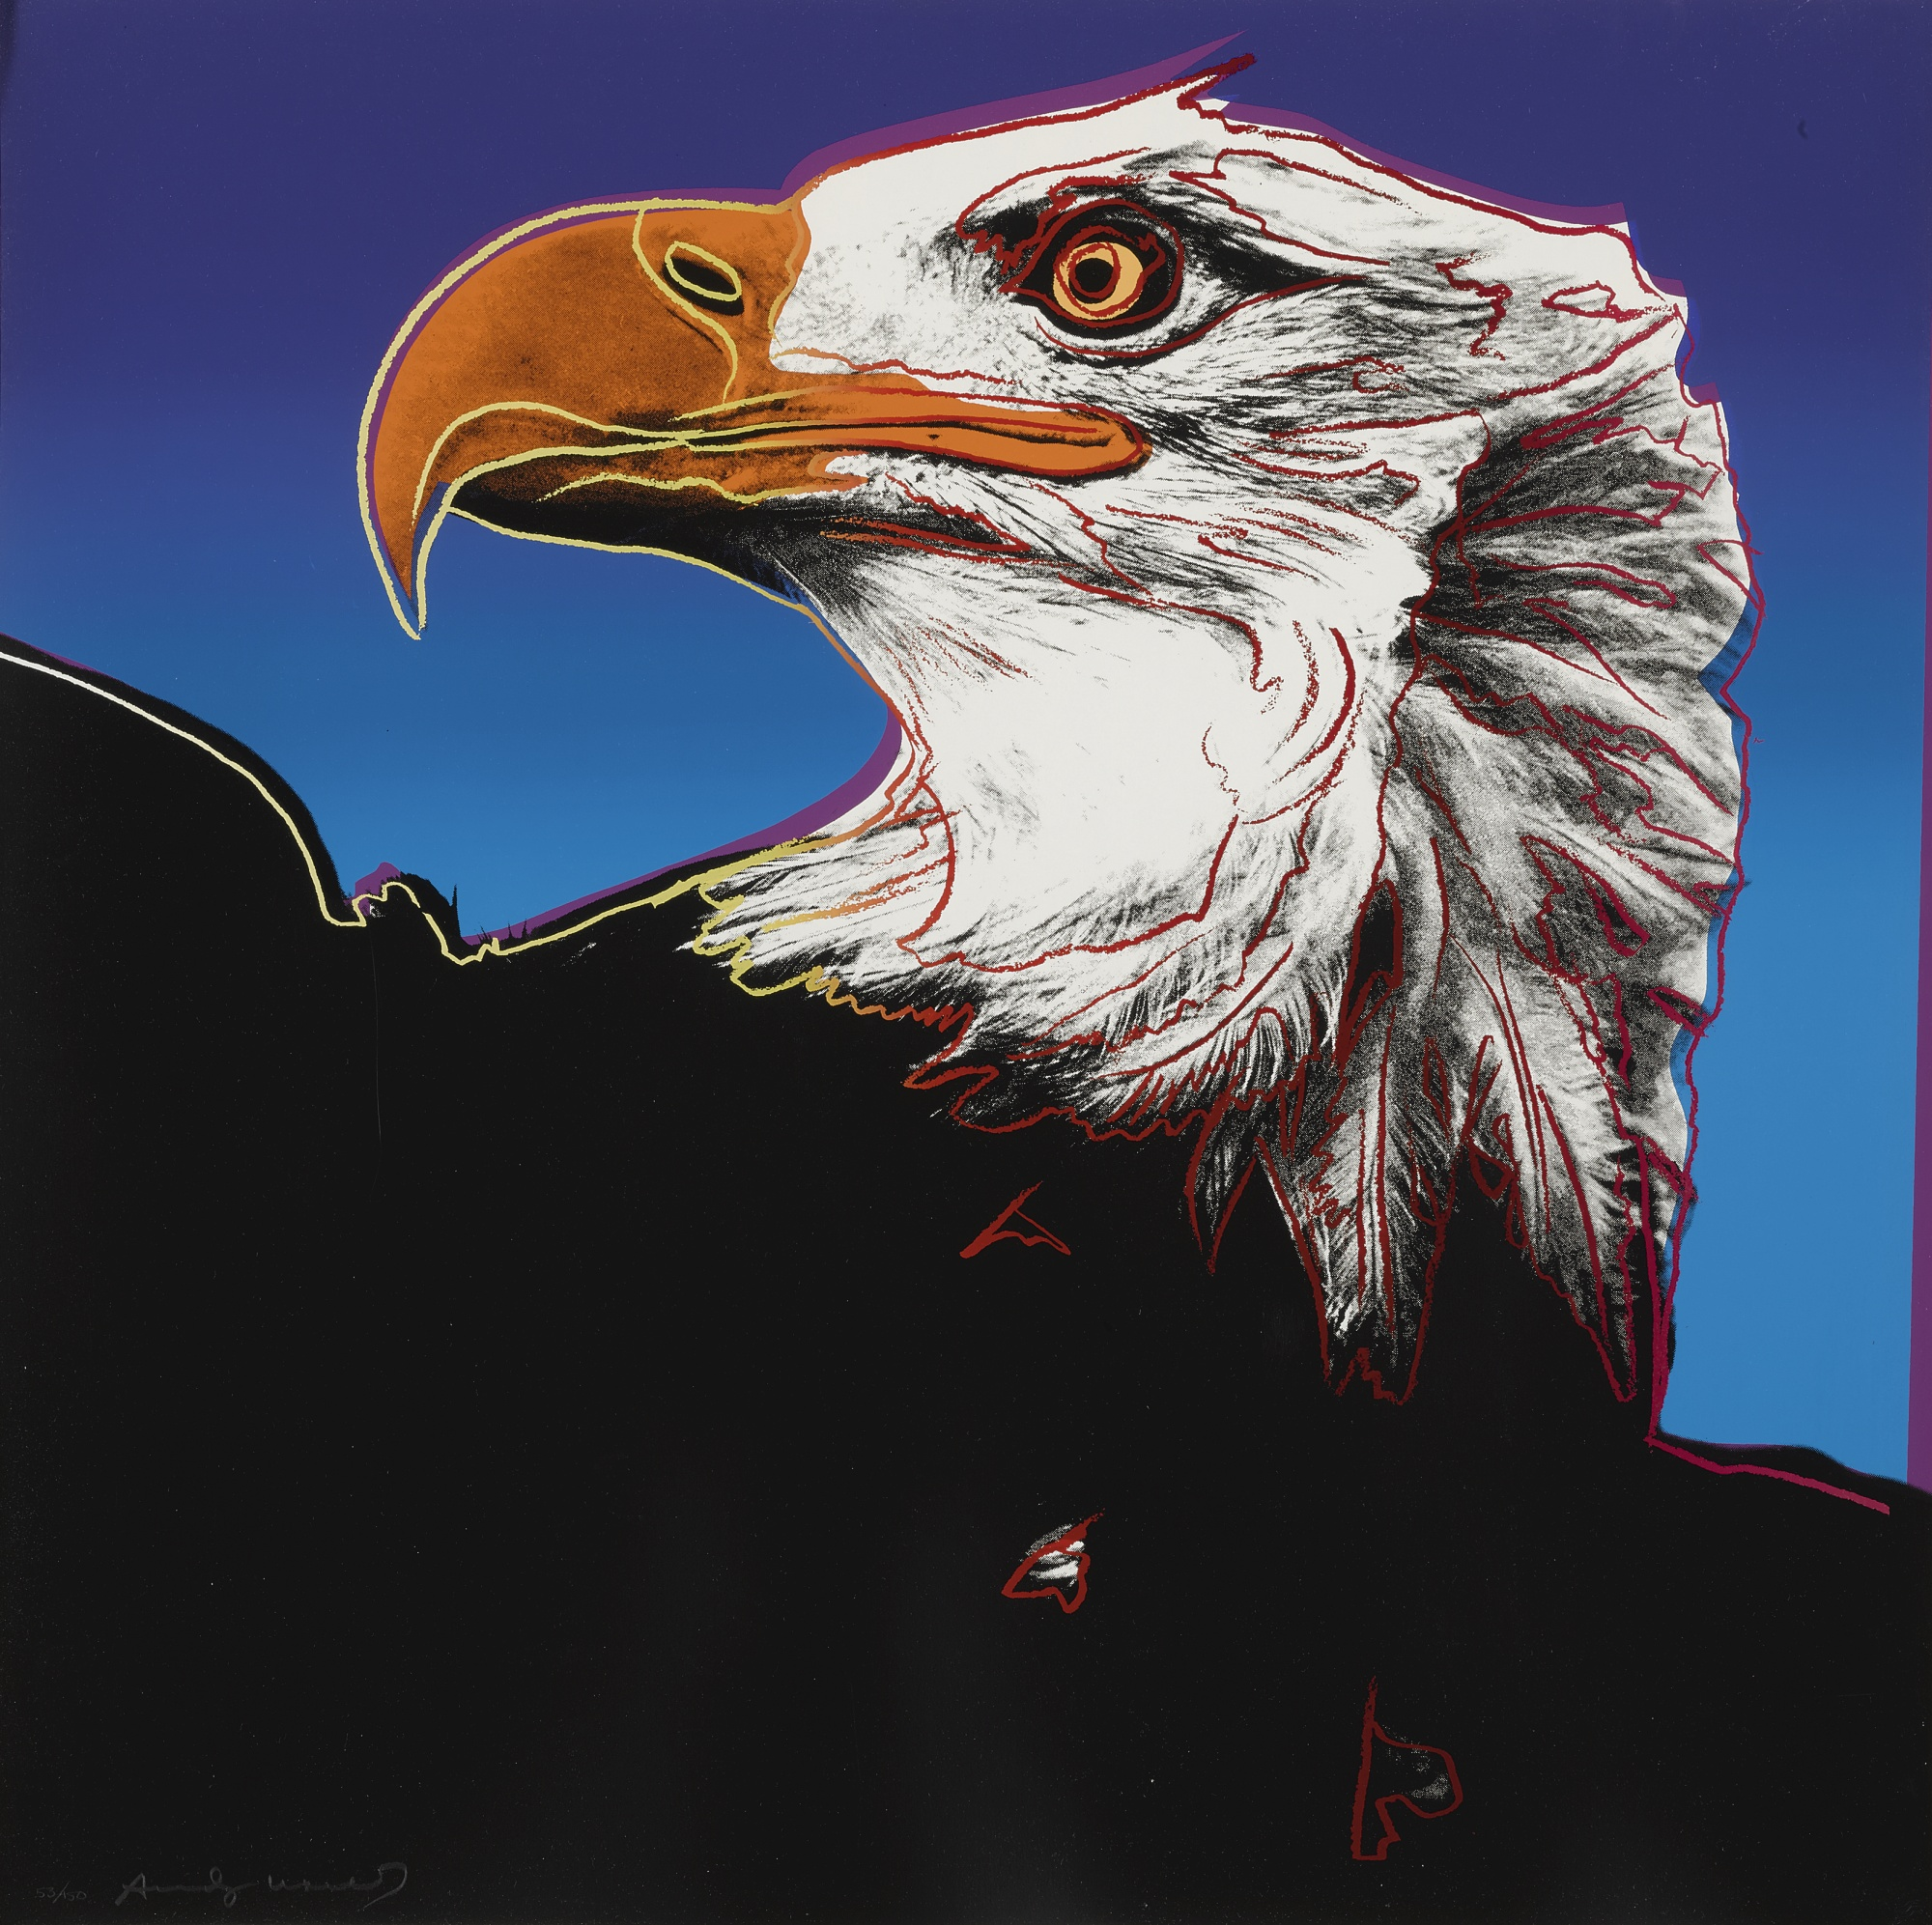 Andy Warhol-Bald Eagle (F. & S. II.296)-1983